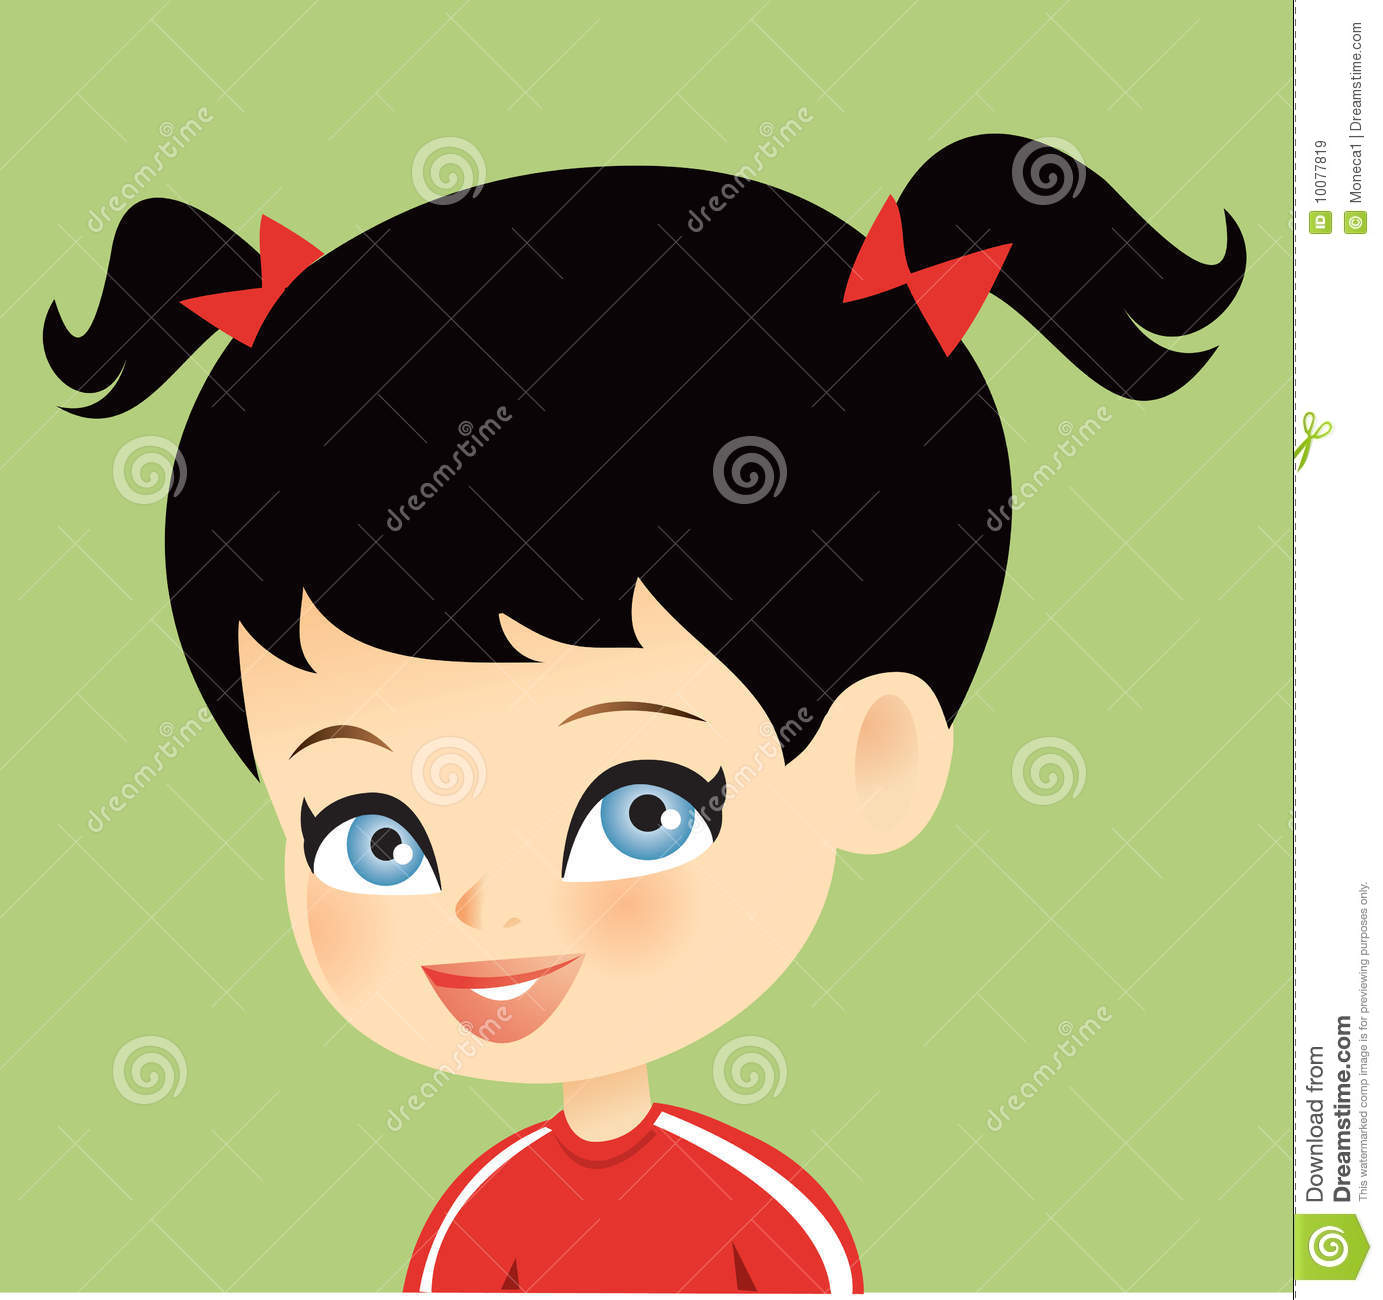 Cute Little Girl Royalty Free Stock Images Image 10077819